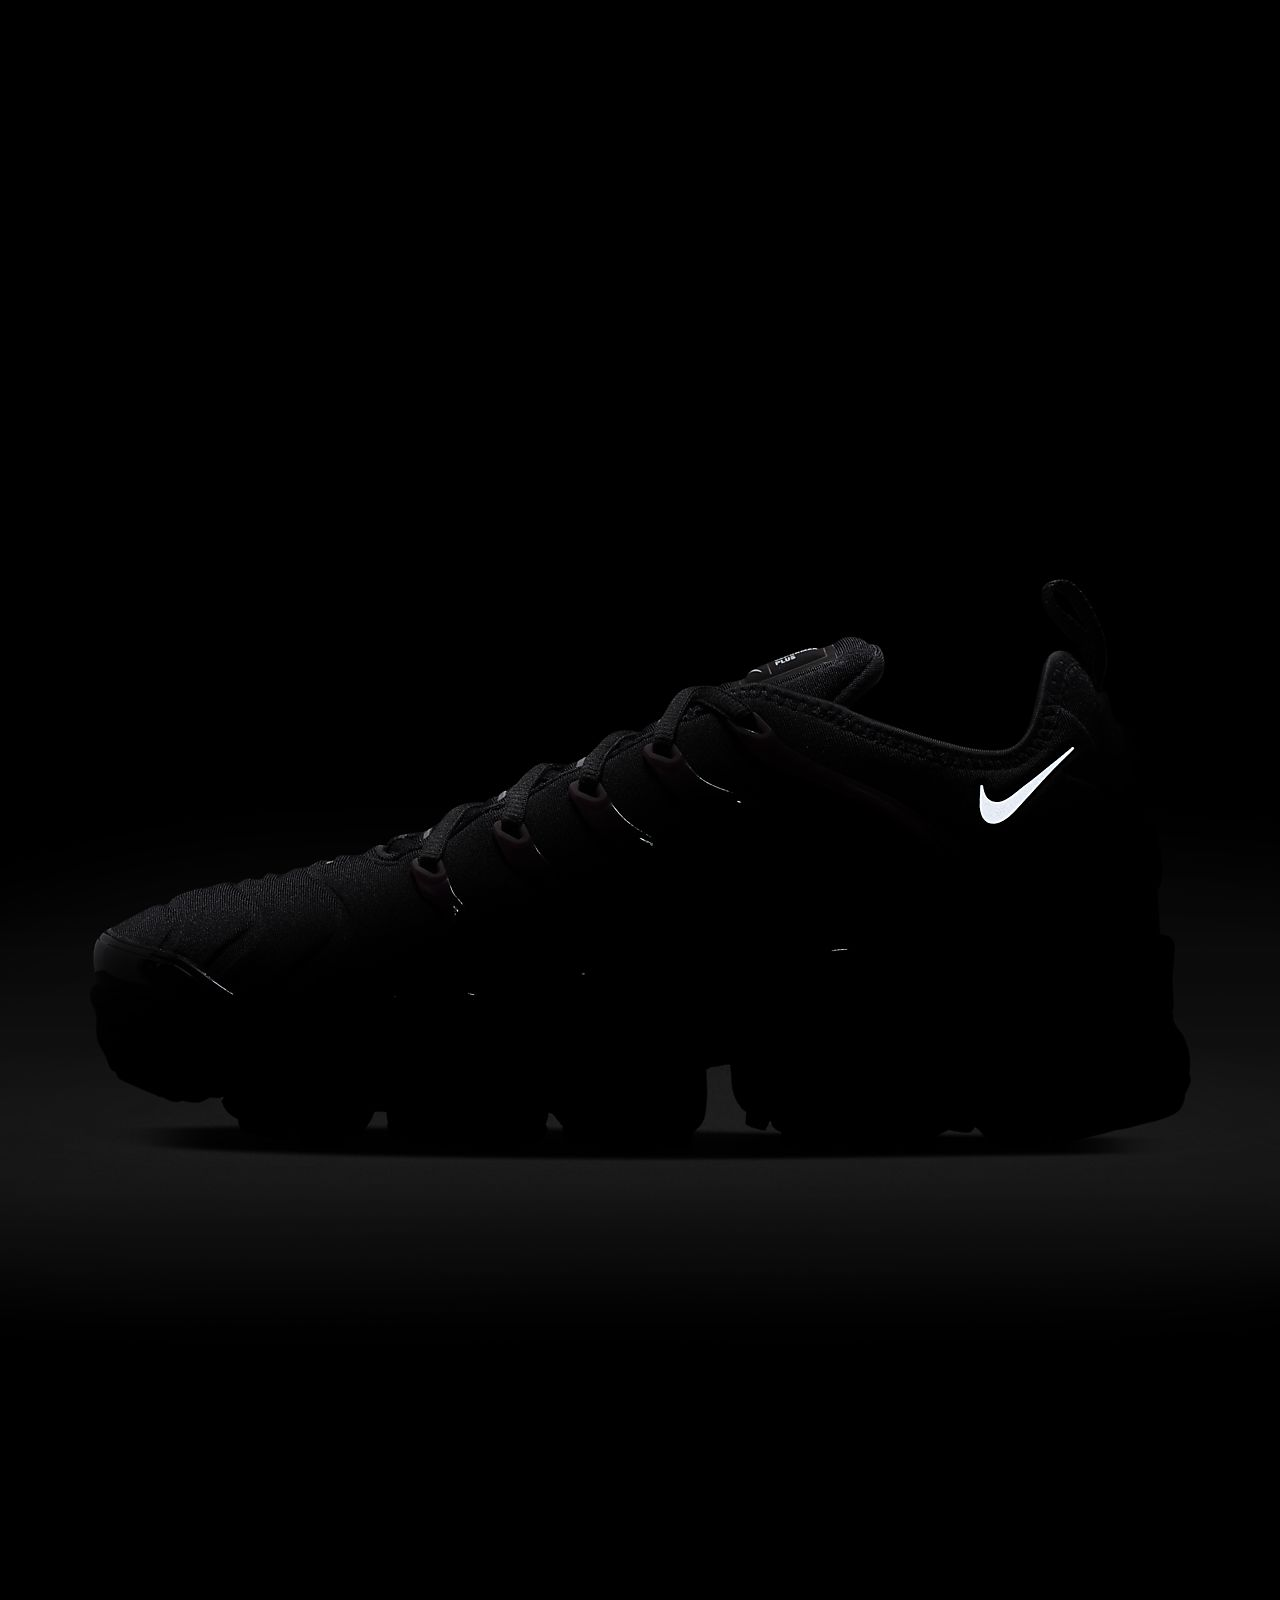 great look timeless design on feet at Chaussure Nike Air VaporMax Plus pour Homme. Nike MA